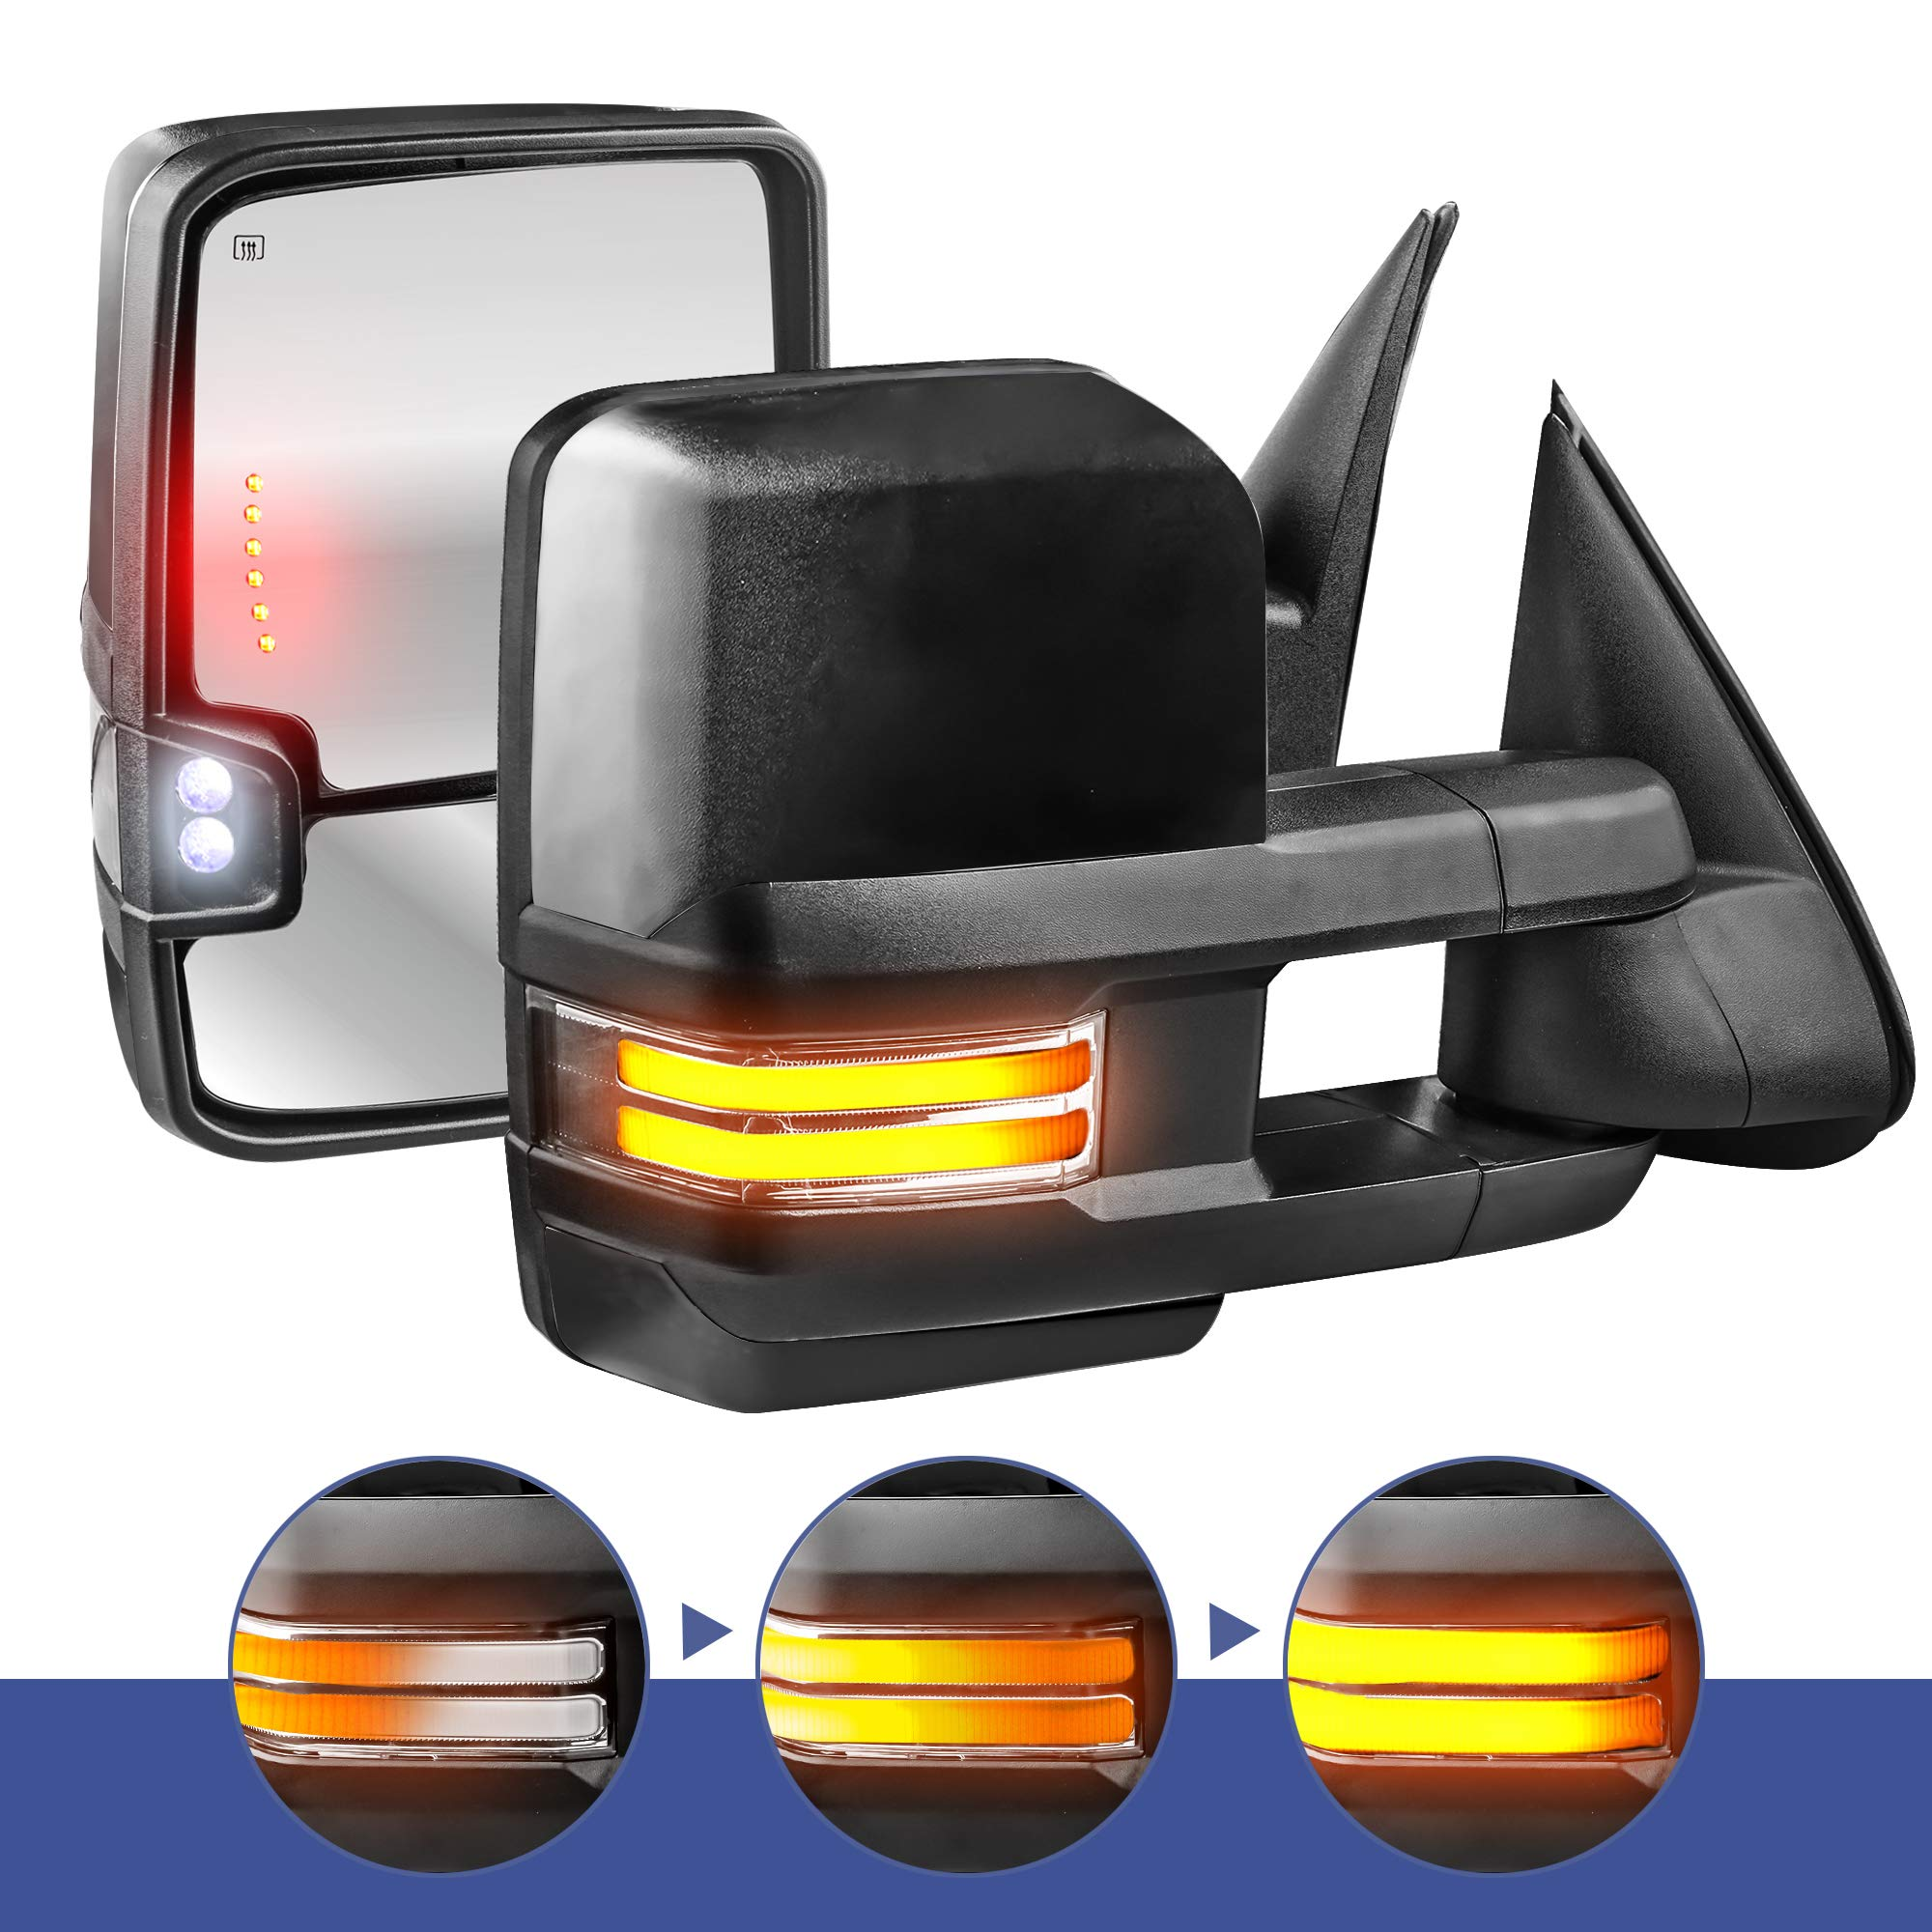 MOSTPLUS Power Heated Towing Mirrors for Chevy Silverado Suburban Tahoe GMC Serria Yukon 2003-2006 w/Sequential Turn light, Clearance Lamp, Running Light(Set of 2) (Black) by MOSTPLUS